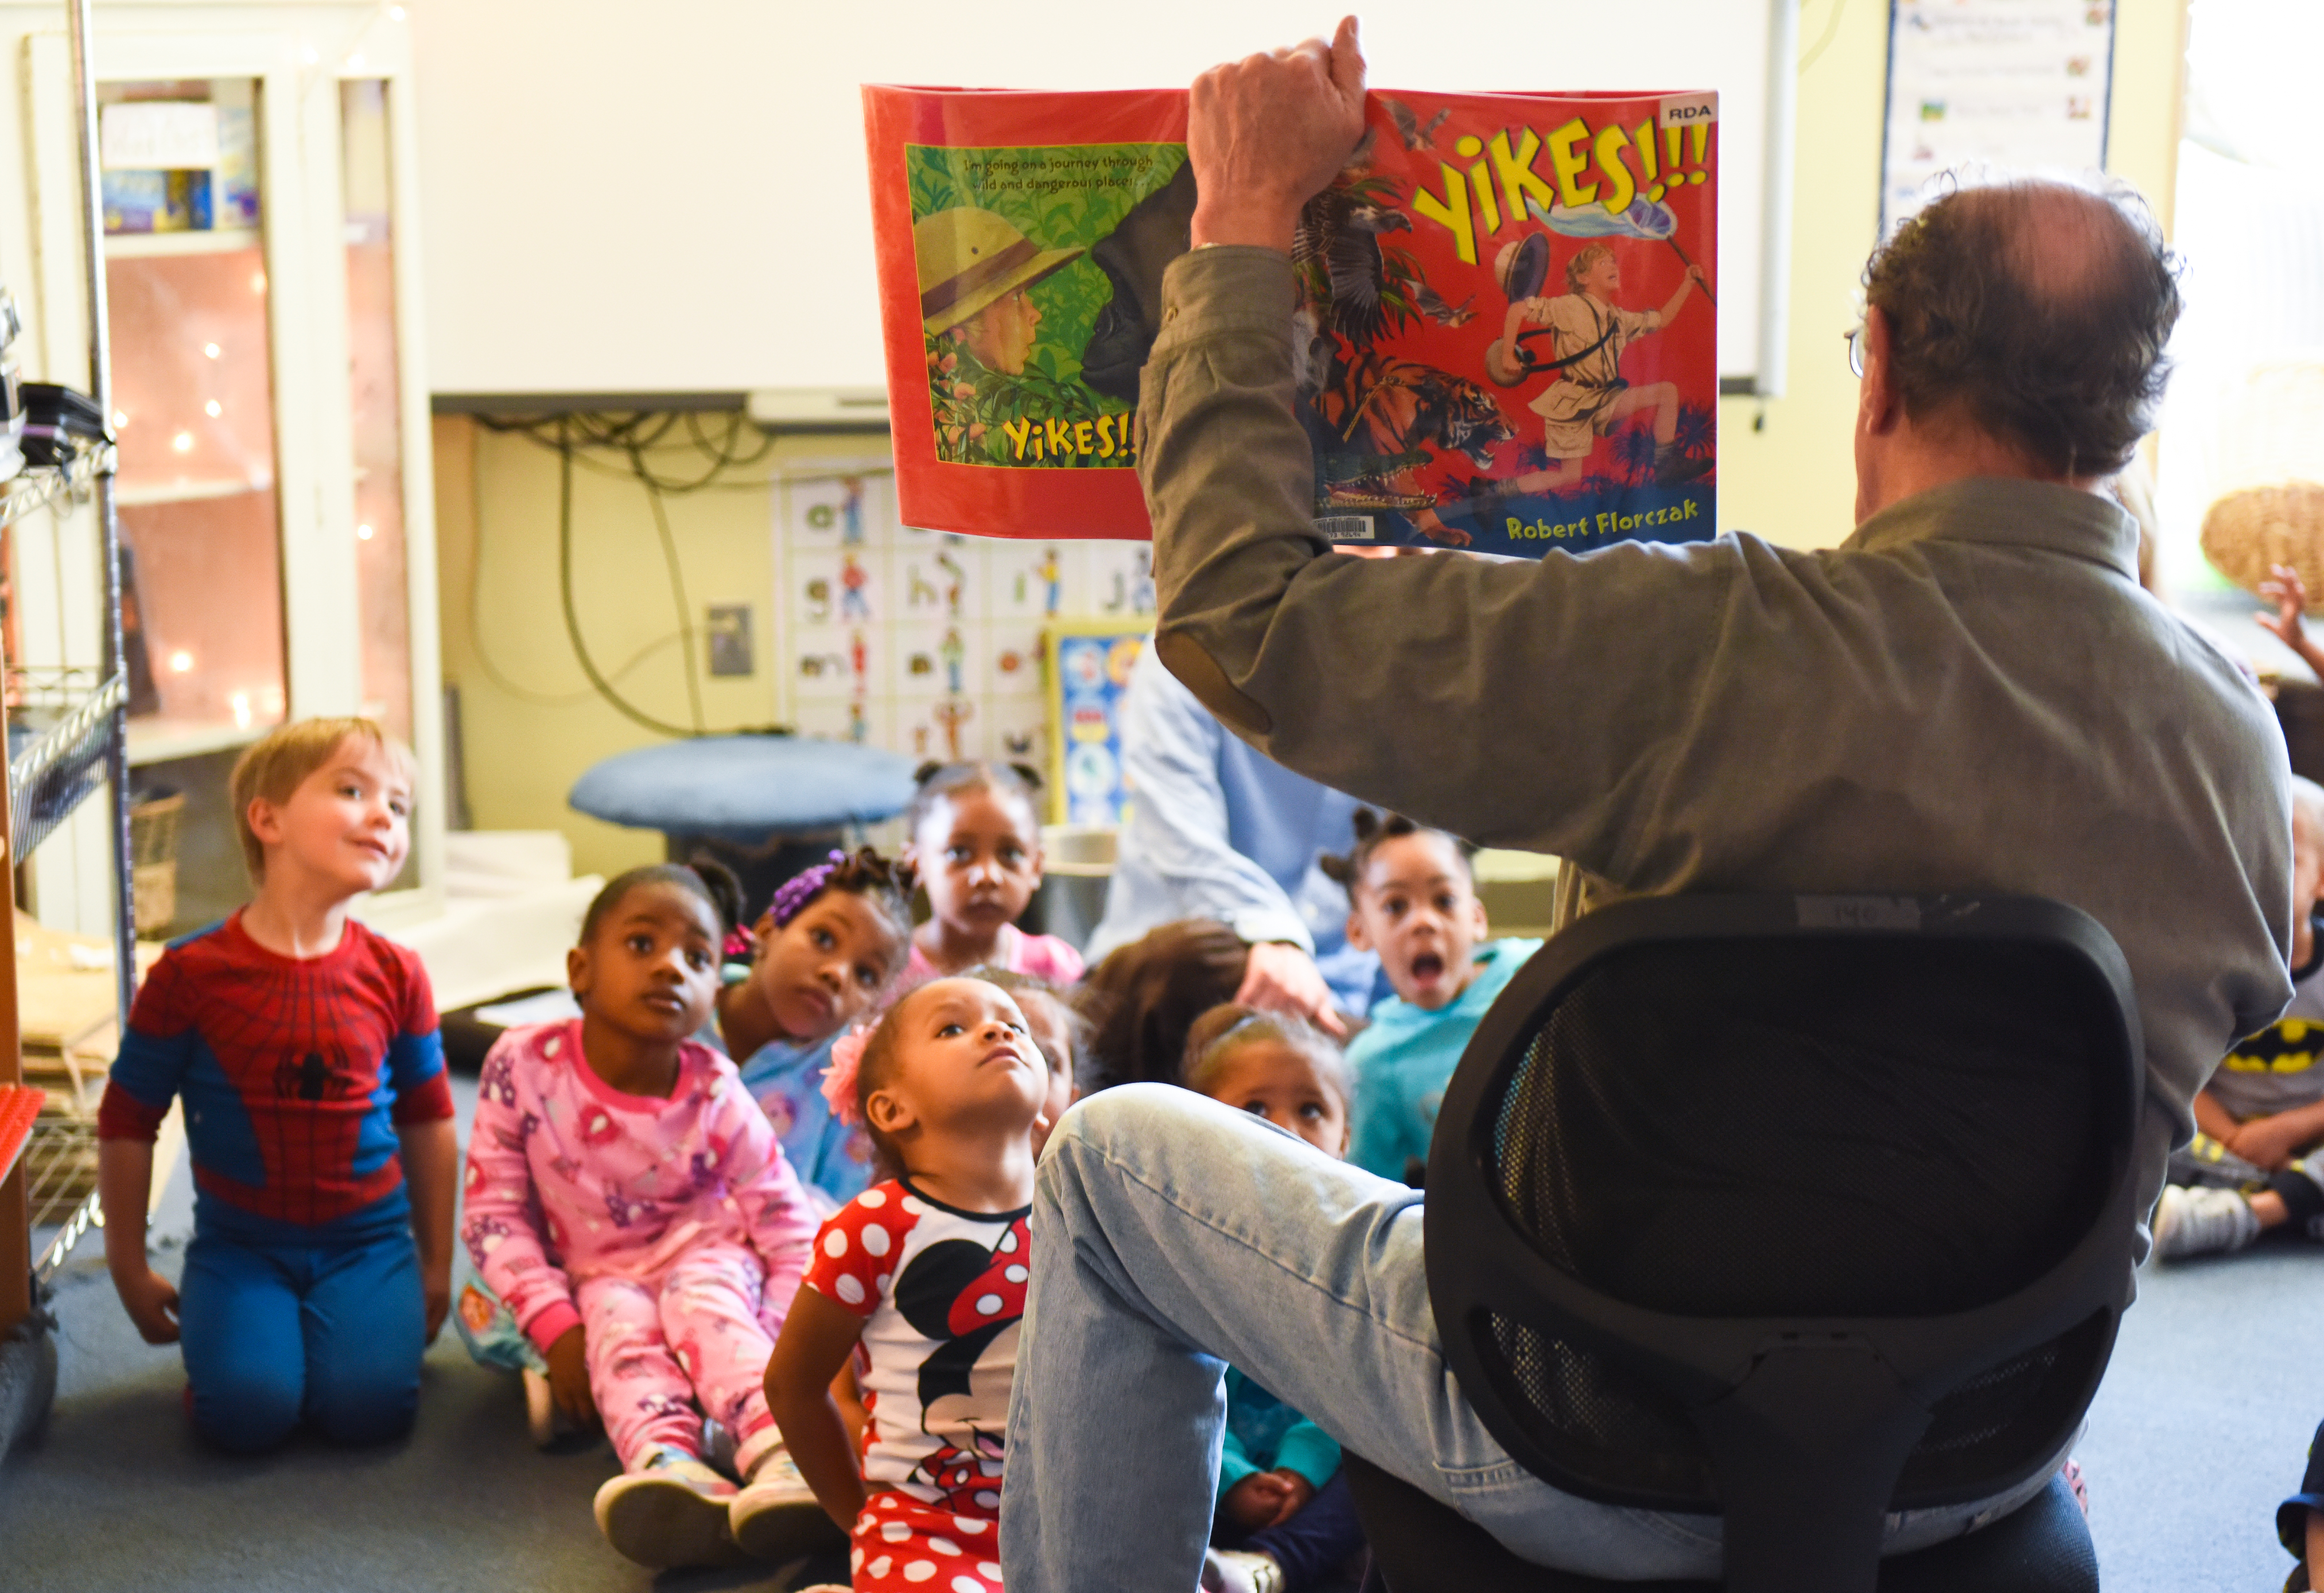 A seated man reads a picture book to a diverse group of children sitting around his feet in a child care setting.